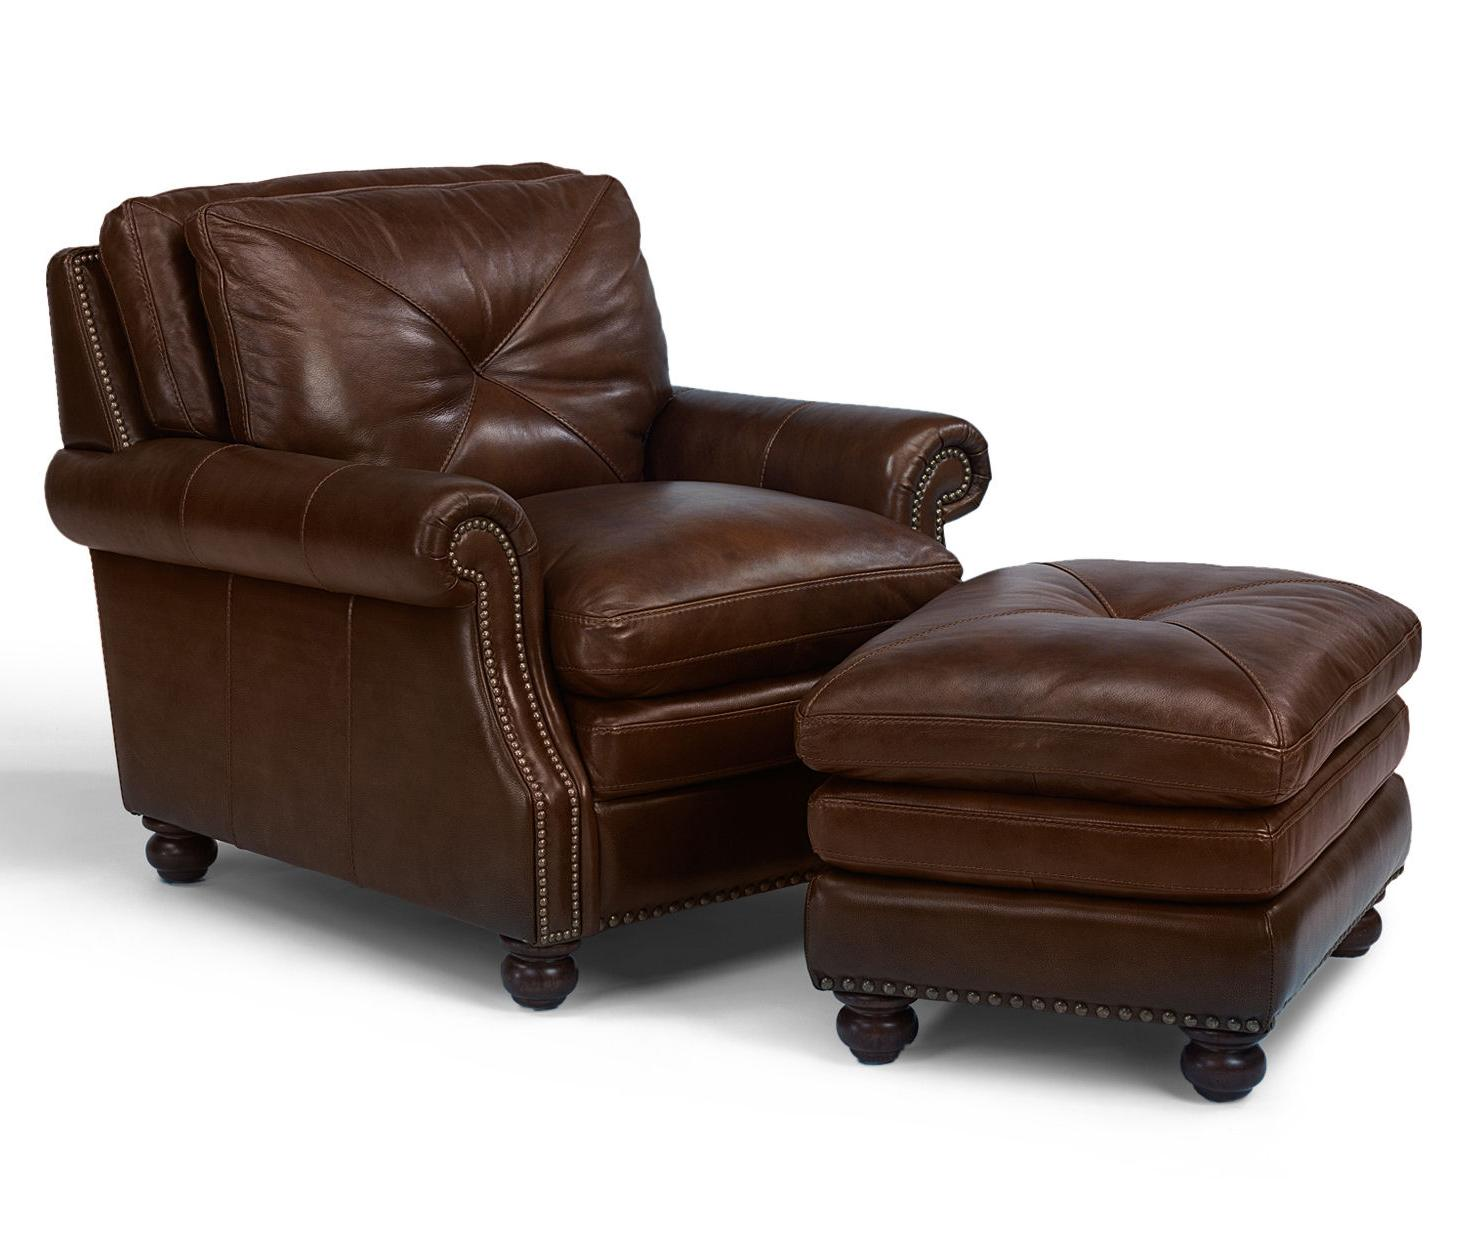 Leather Chairs And Ottomans Sale Leather Chair And Ottoman Combination Set With Nailhead Trim